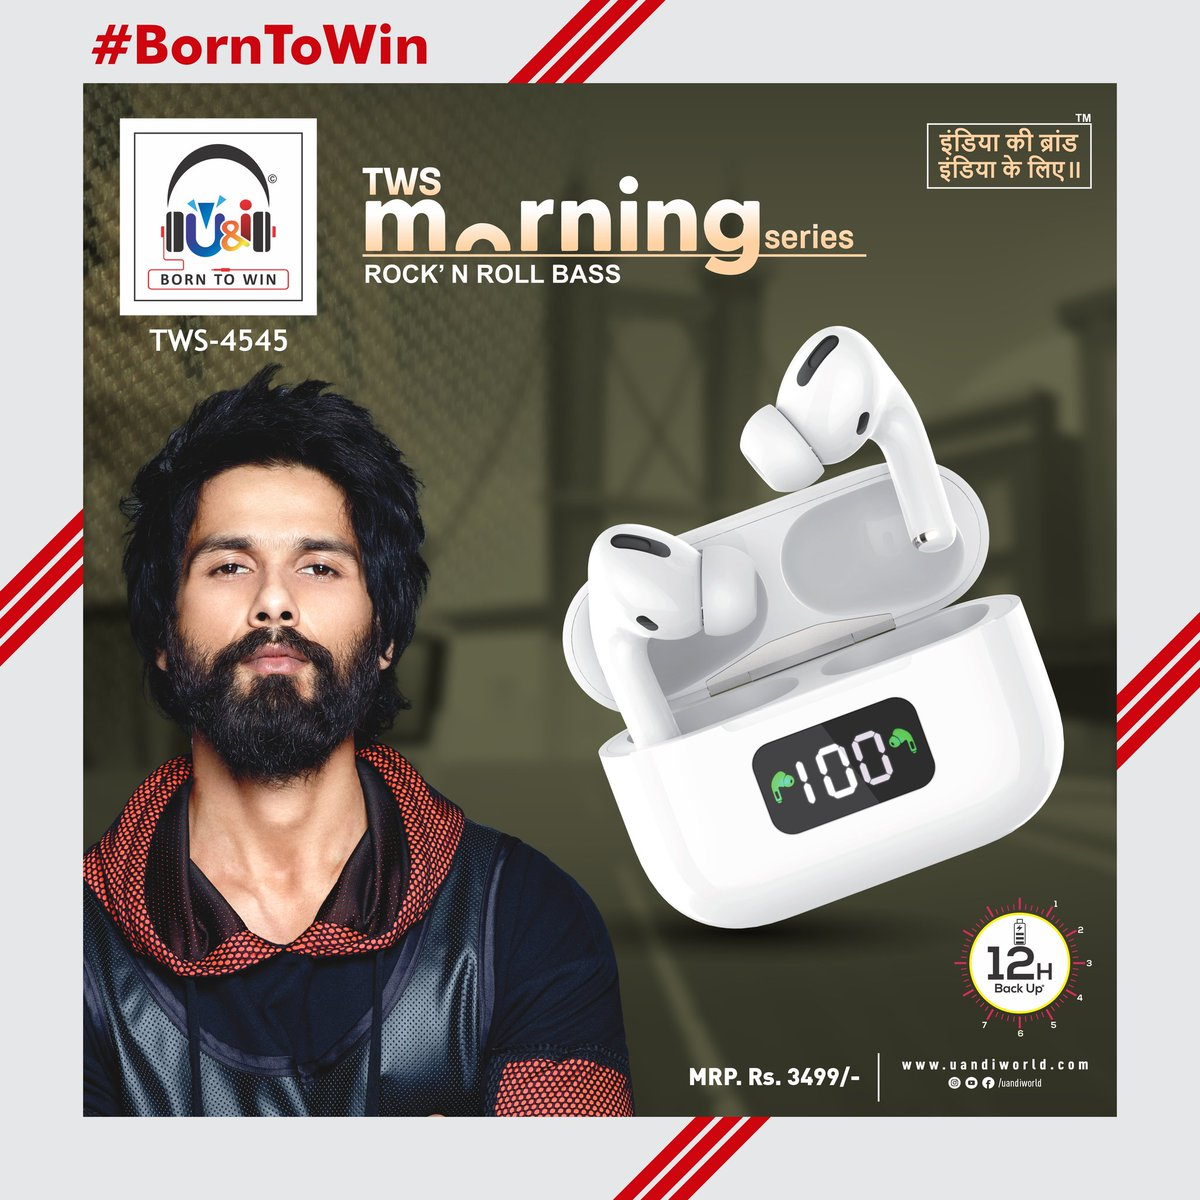 Add new style to your daily look with U&i Morning series with 12 hours battery backup and LED display so you can see battery easily.  #uandi #uandiworld #shahidkapoor #earbuds #tws #mobileaccessories #borntowin #musicismylife #shanatics